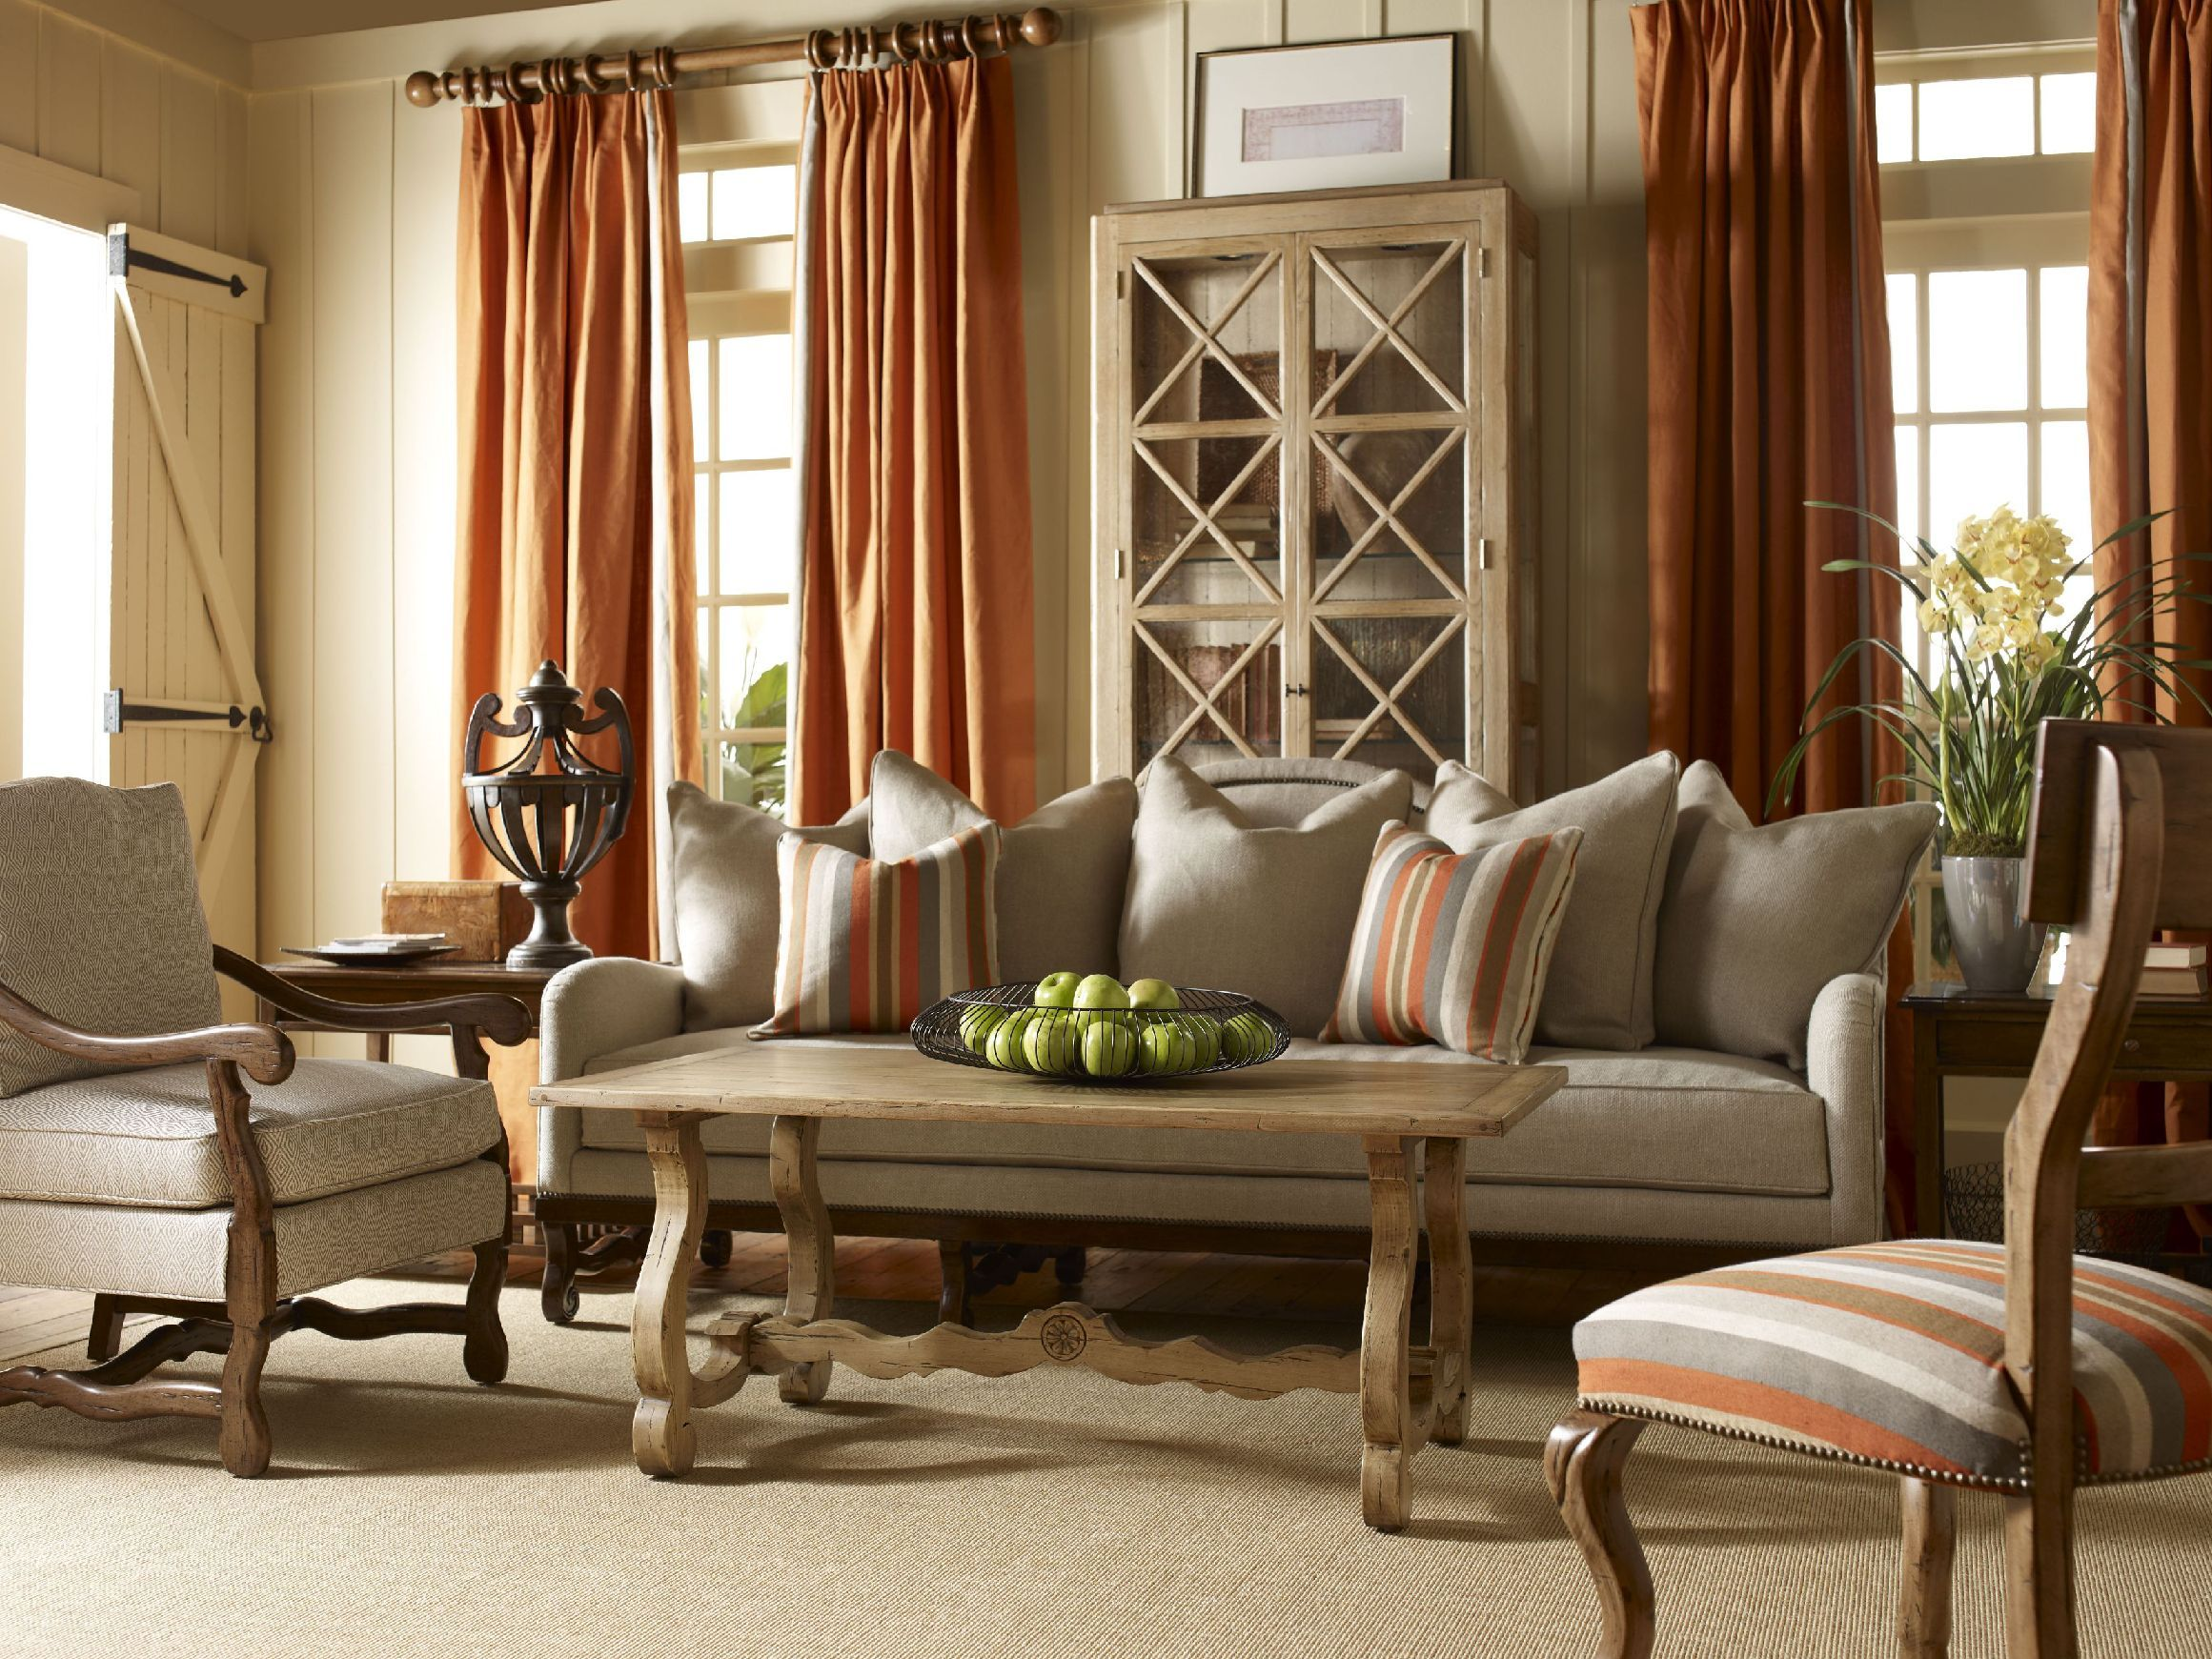 22 Cozy Country Living Room Designs